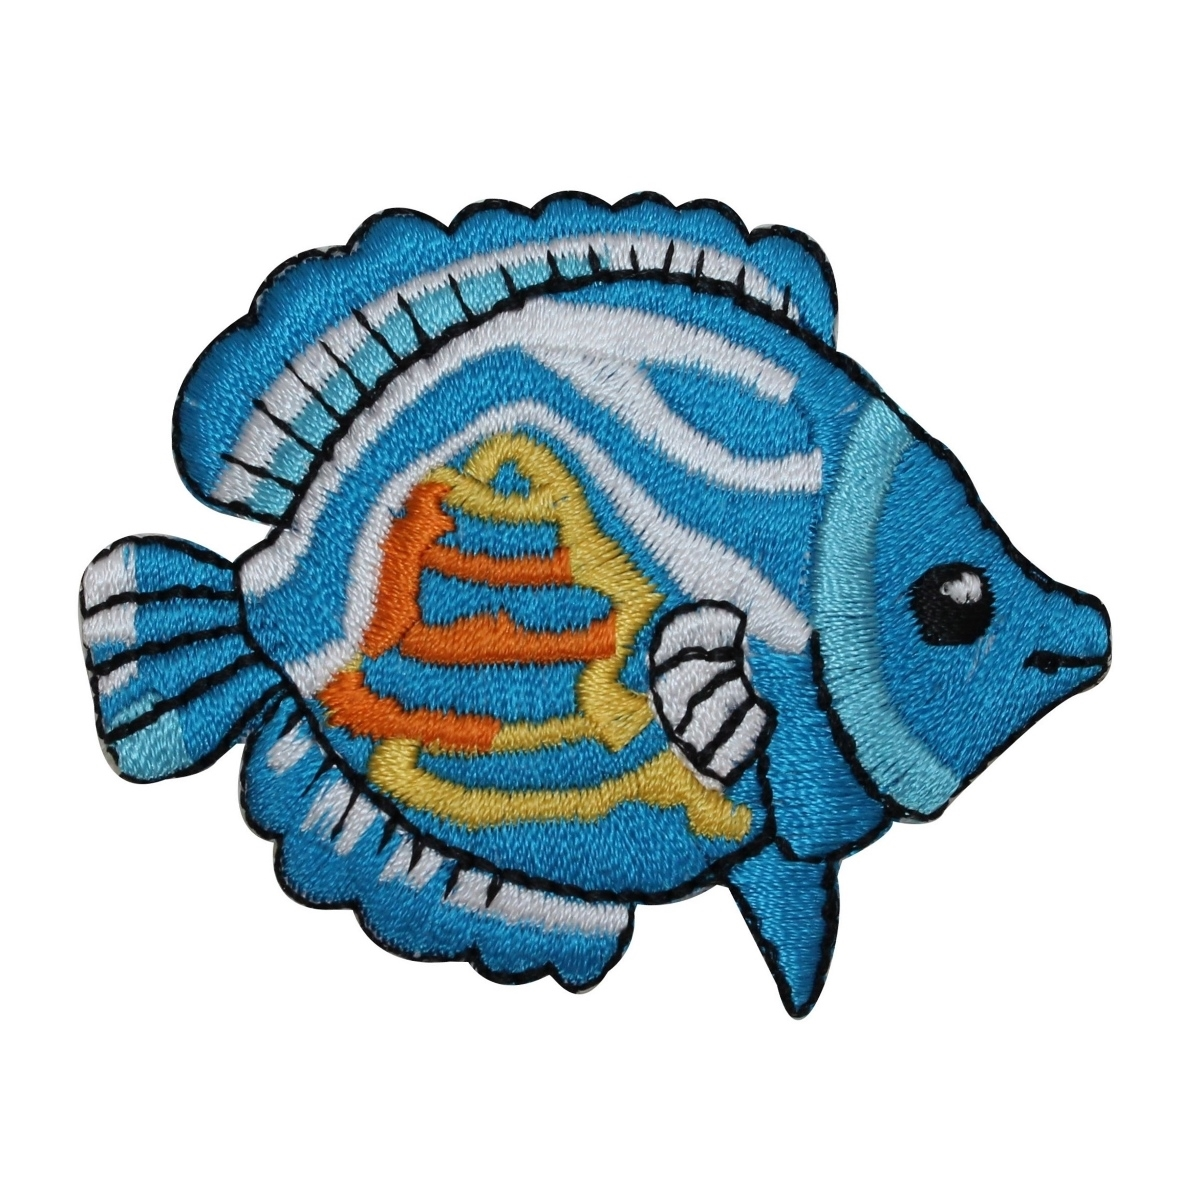 ID 0182B Large Tropical Fish Patch Ocean Animal Embroidered Iron On Applique